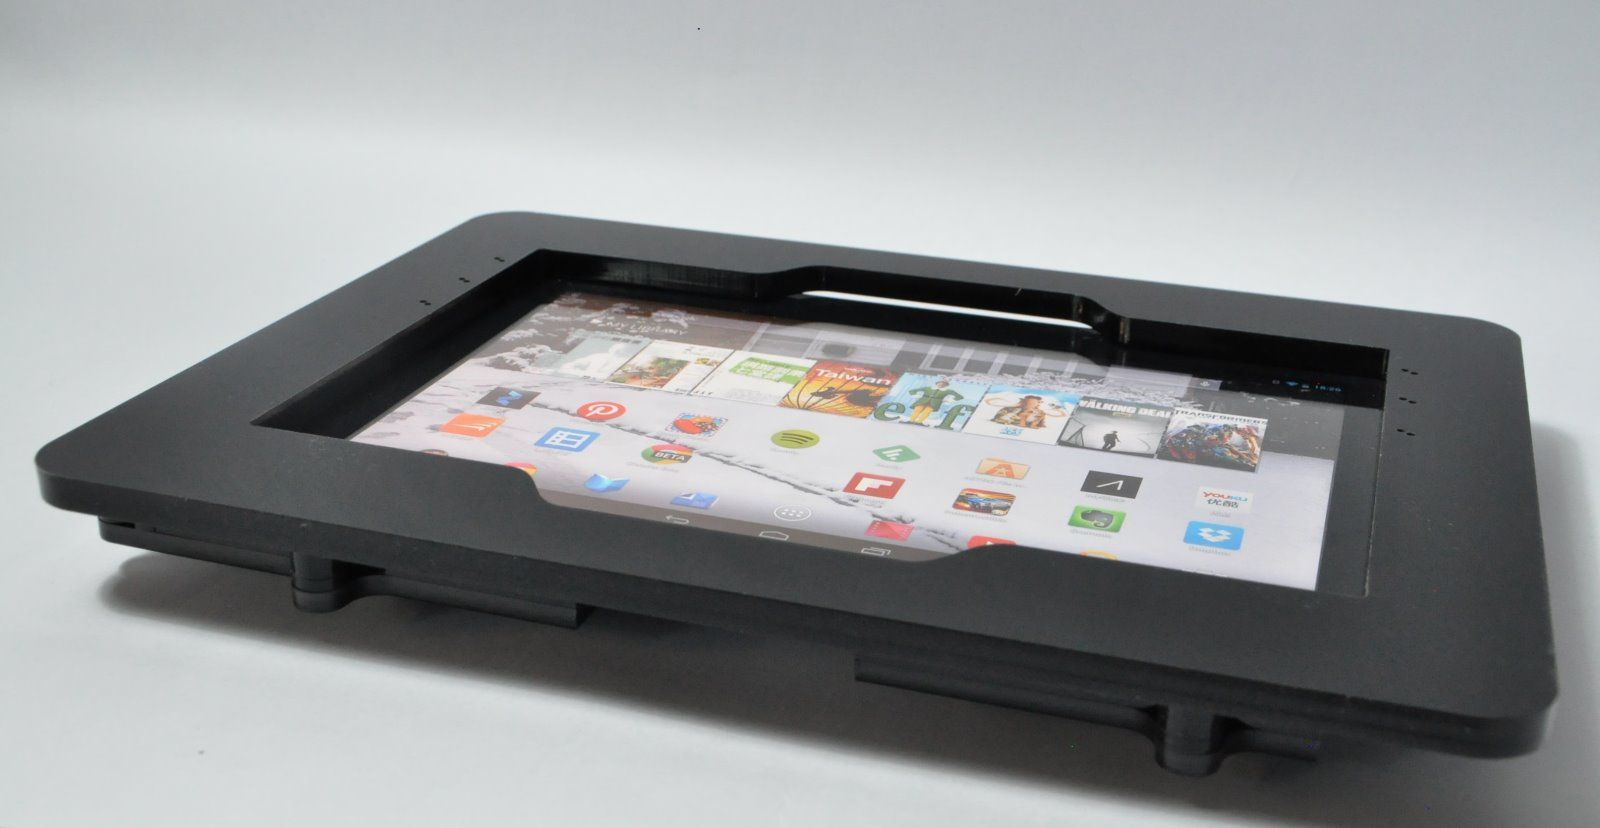 Black Acrylic Enclosure For Nexus 10 Samsung Galaxy Tab 10 1 And Asus Memopad 10 Ebay Tablet Mount Nexus 10